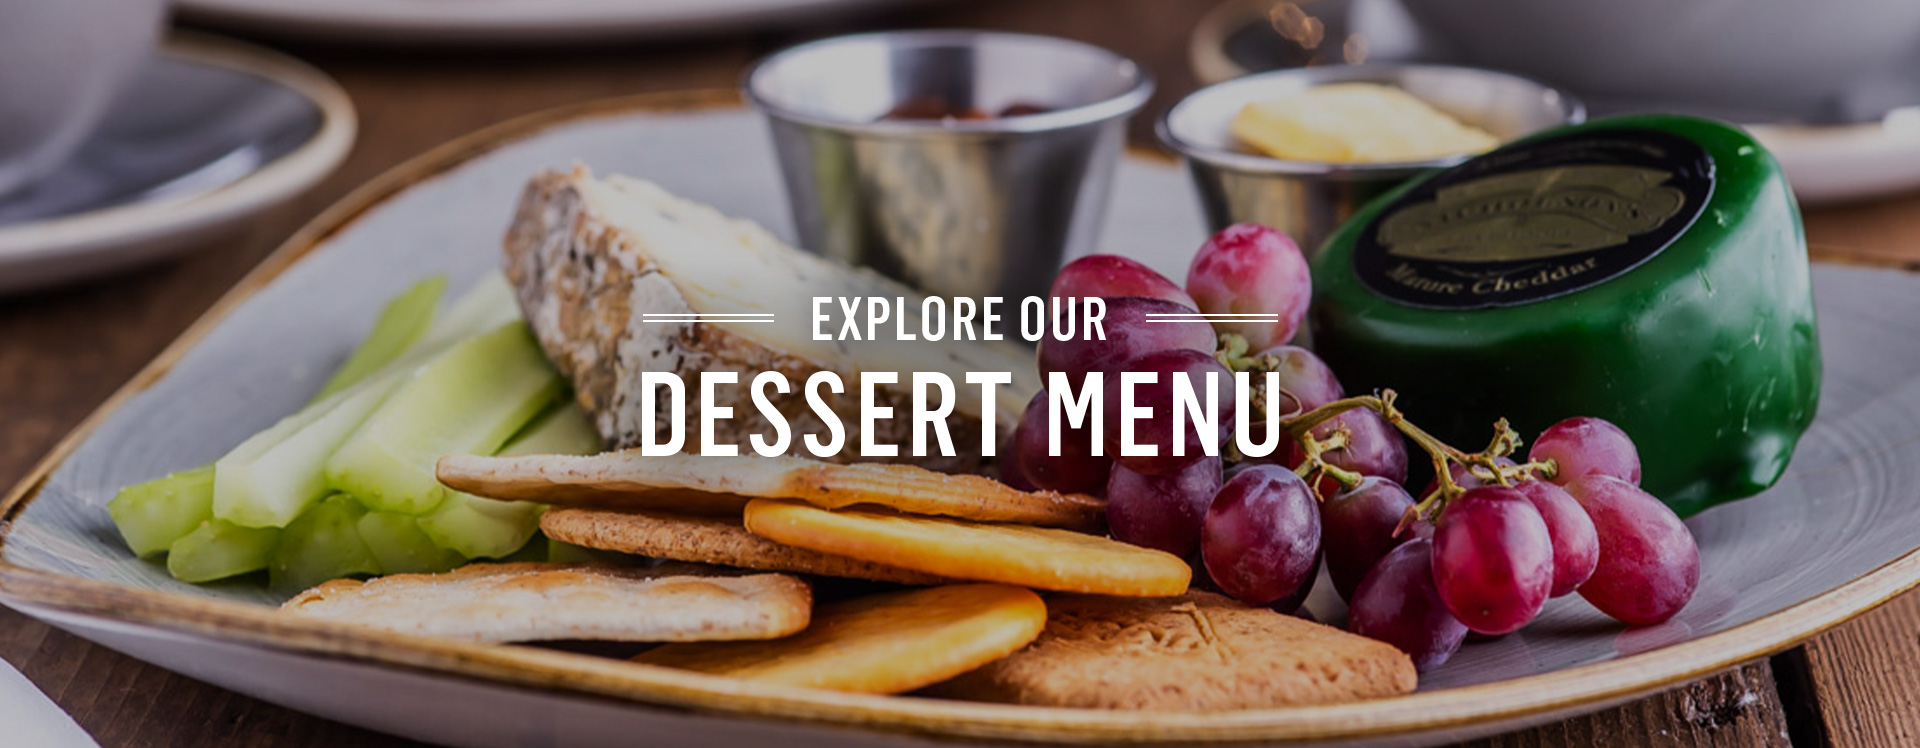 Dessert menu at The White Horse - Book a table